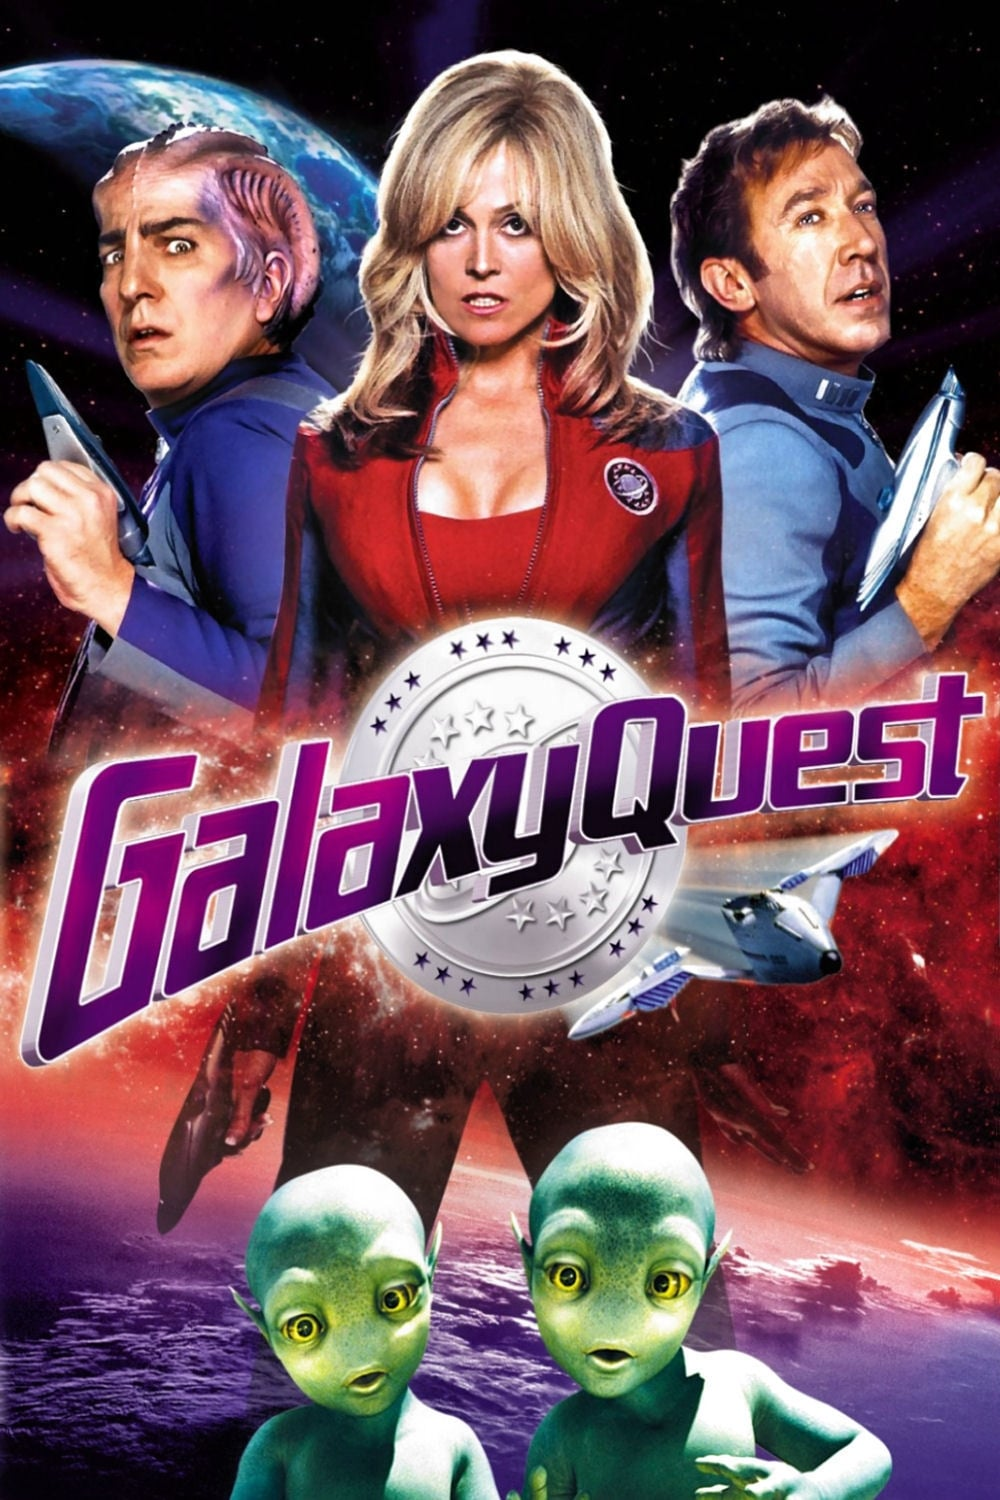 Poster and image movie Film Batalia galactica - Galaxy Quest - Galaxy Quest -  1999